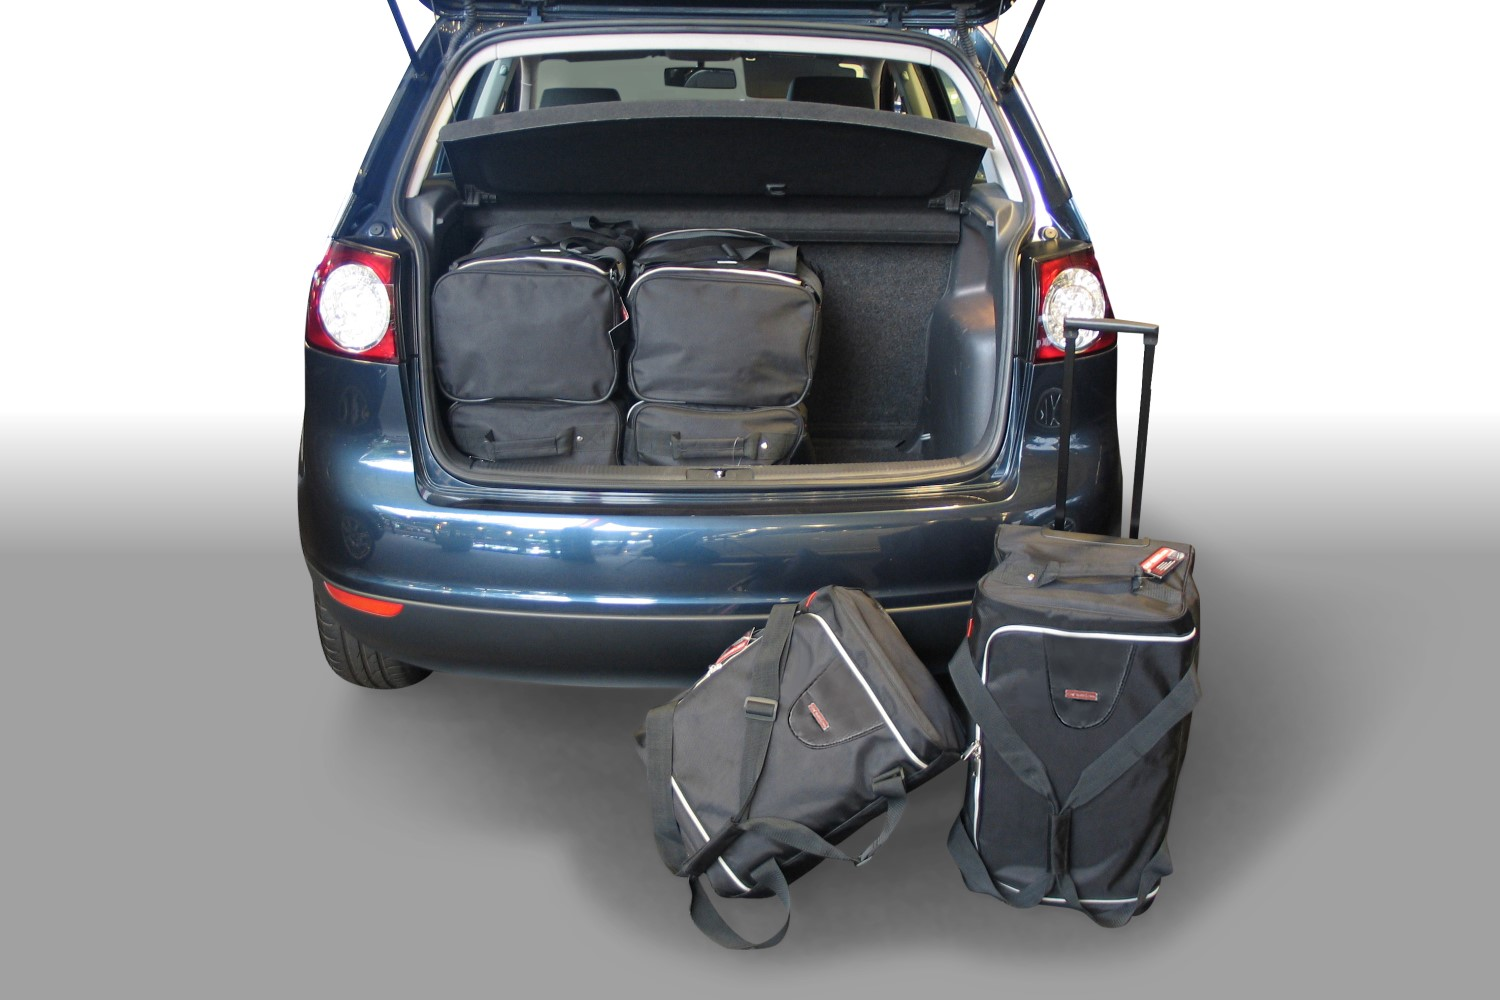 car bags volkswagen golf plus reisetaschen set 1kp 2004. Black Bedroom Furniture Sets. Home Design Ideas